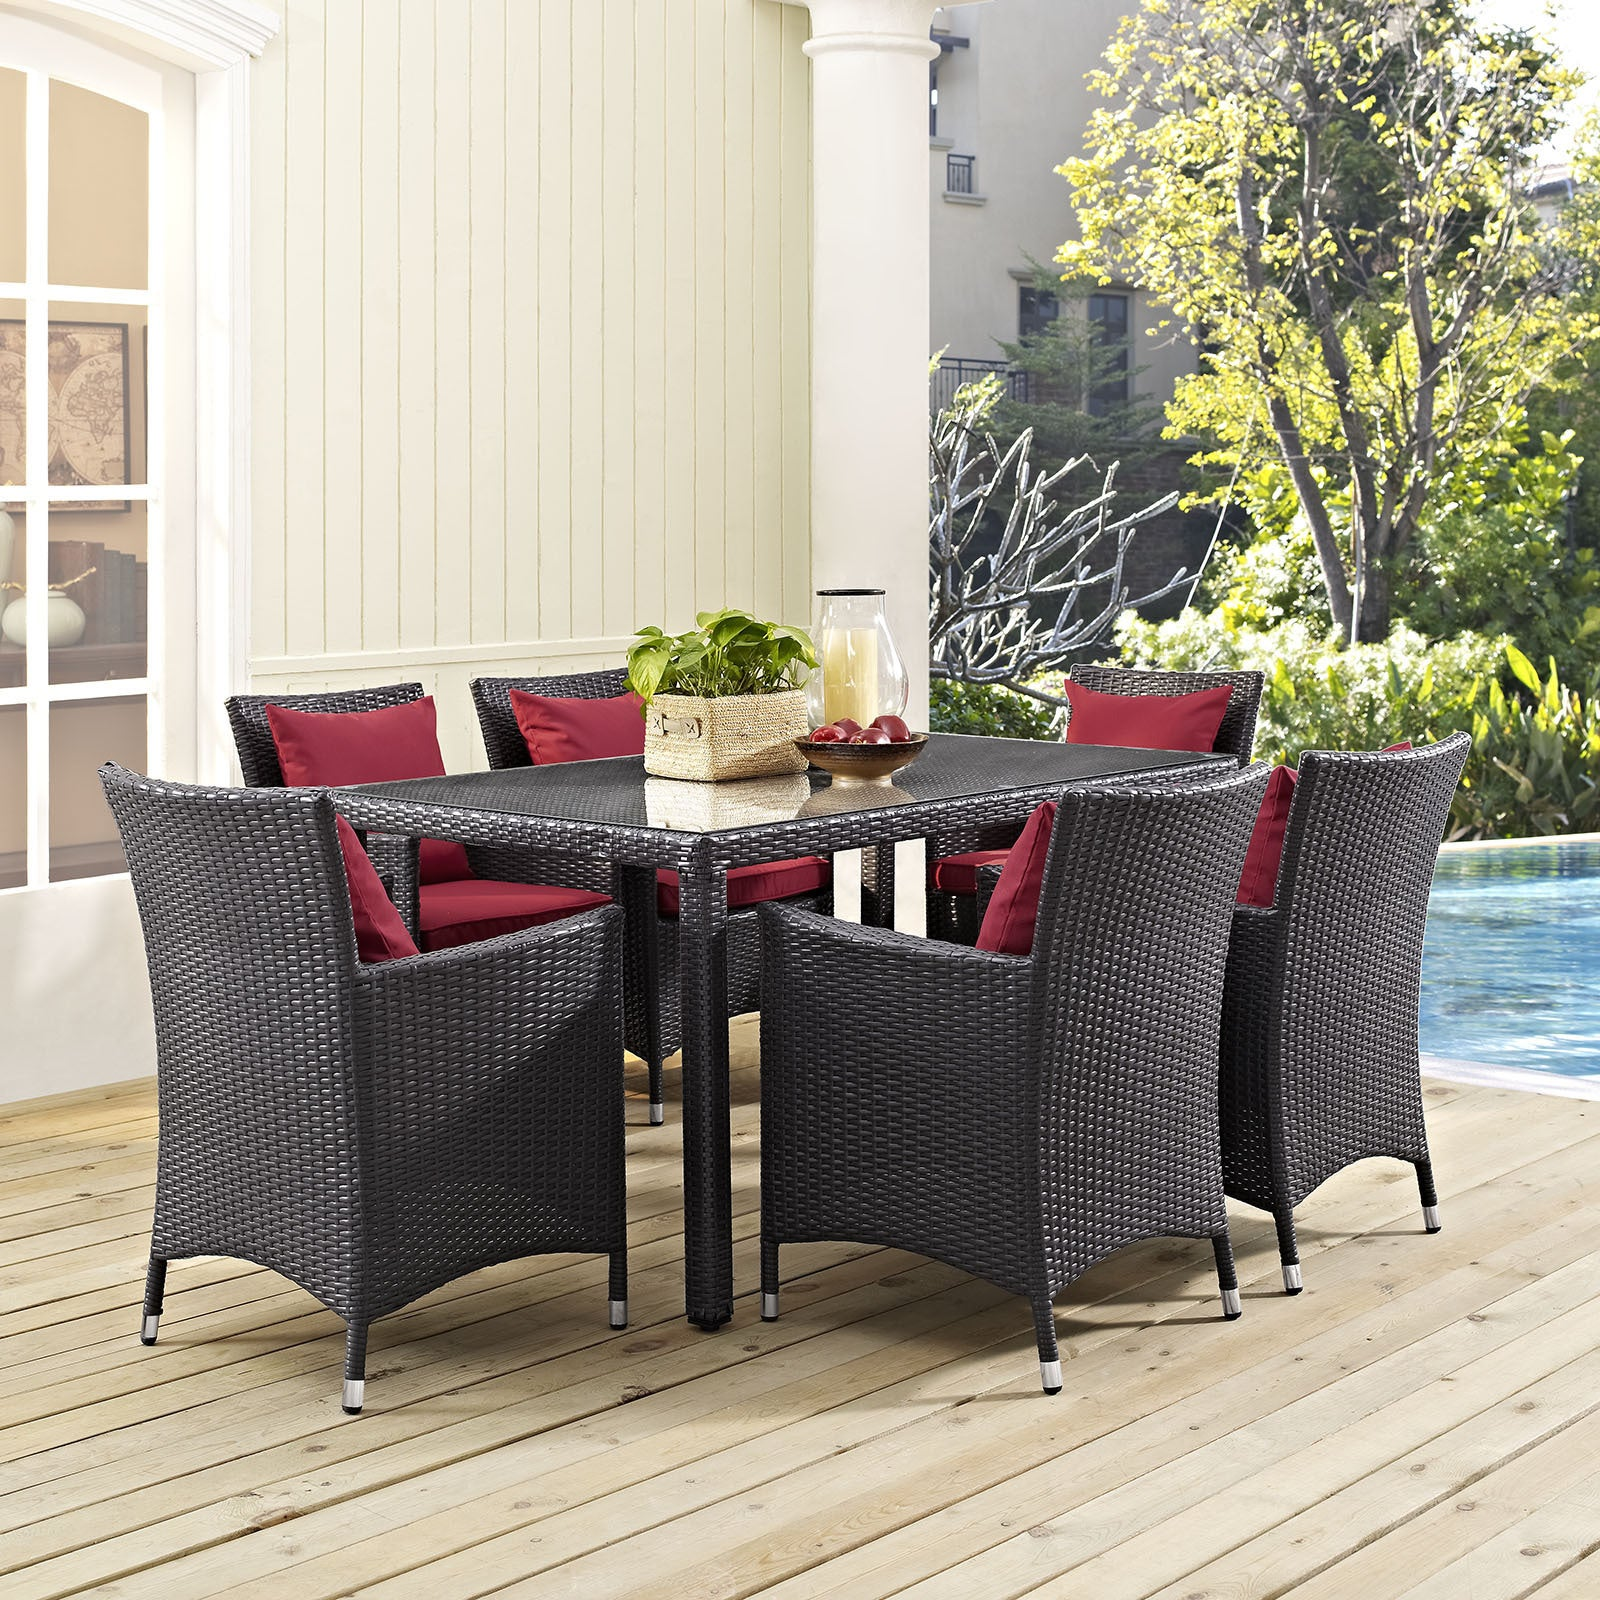 lush ideas fresh poly rectangle set com table lovely best onionskeen round cheap stunning furniture dining patio tables